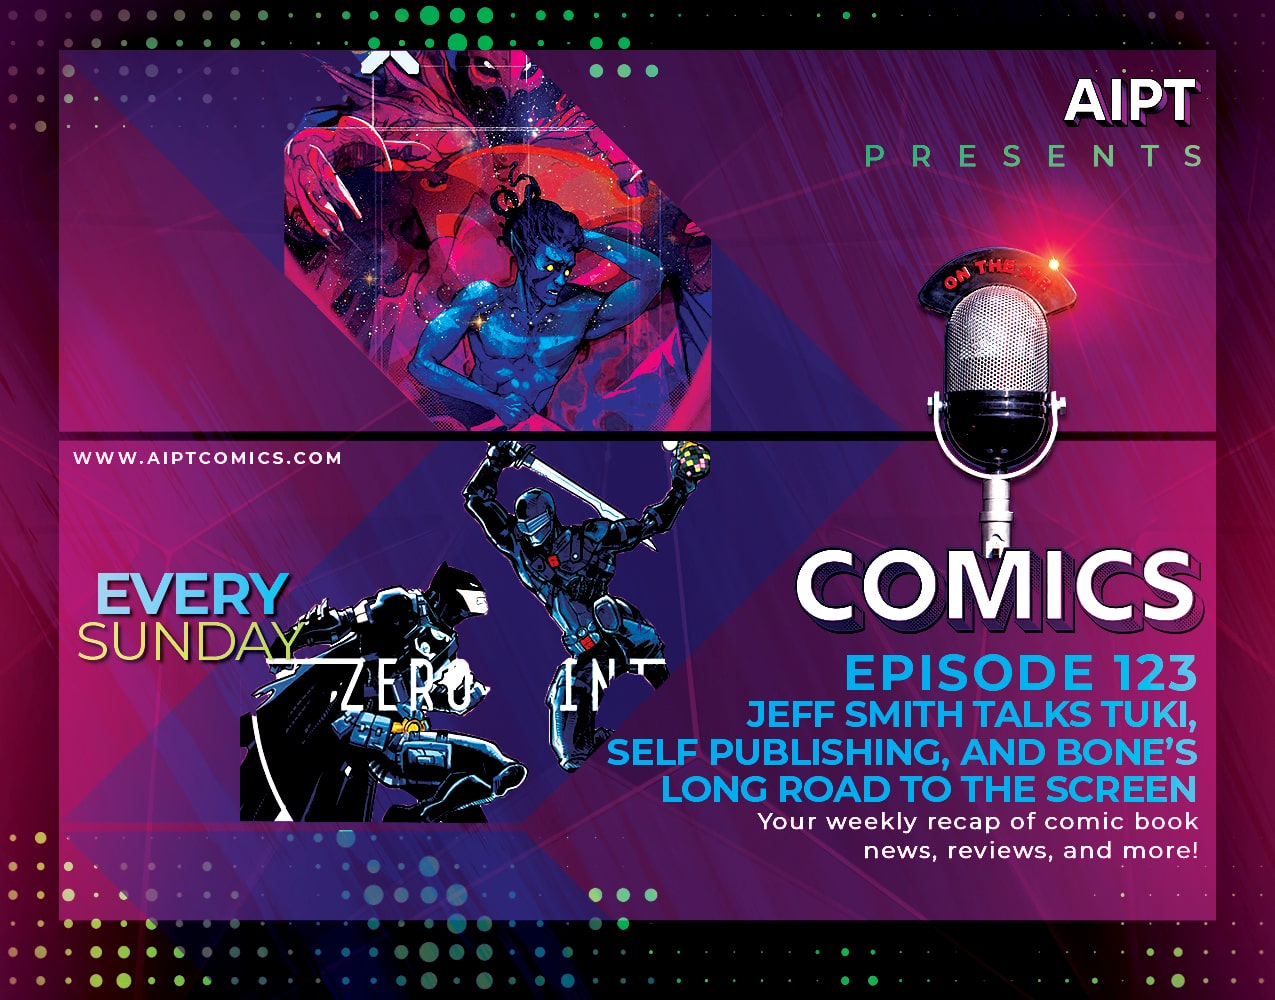 AIPT Comics Podcast Episode 123: Jeff Smith talks 'Tuki,' self publishing, and Bone's long road to the screen